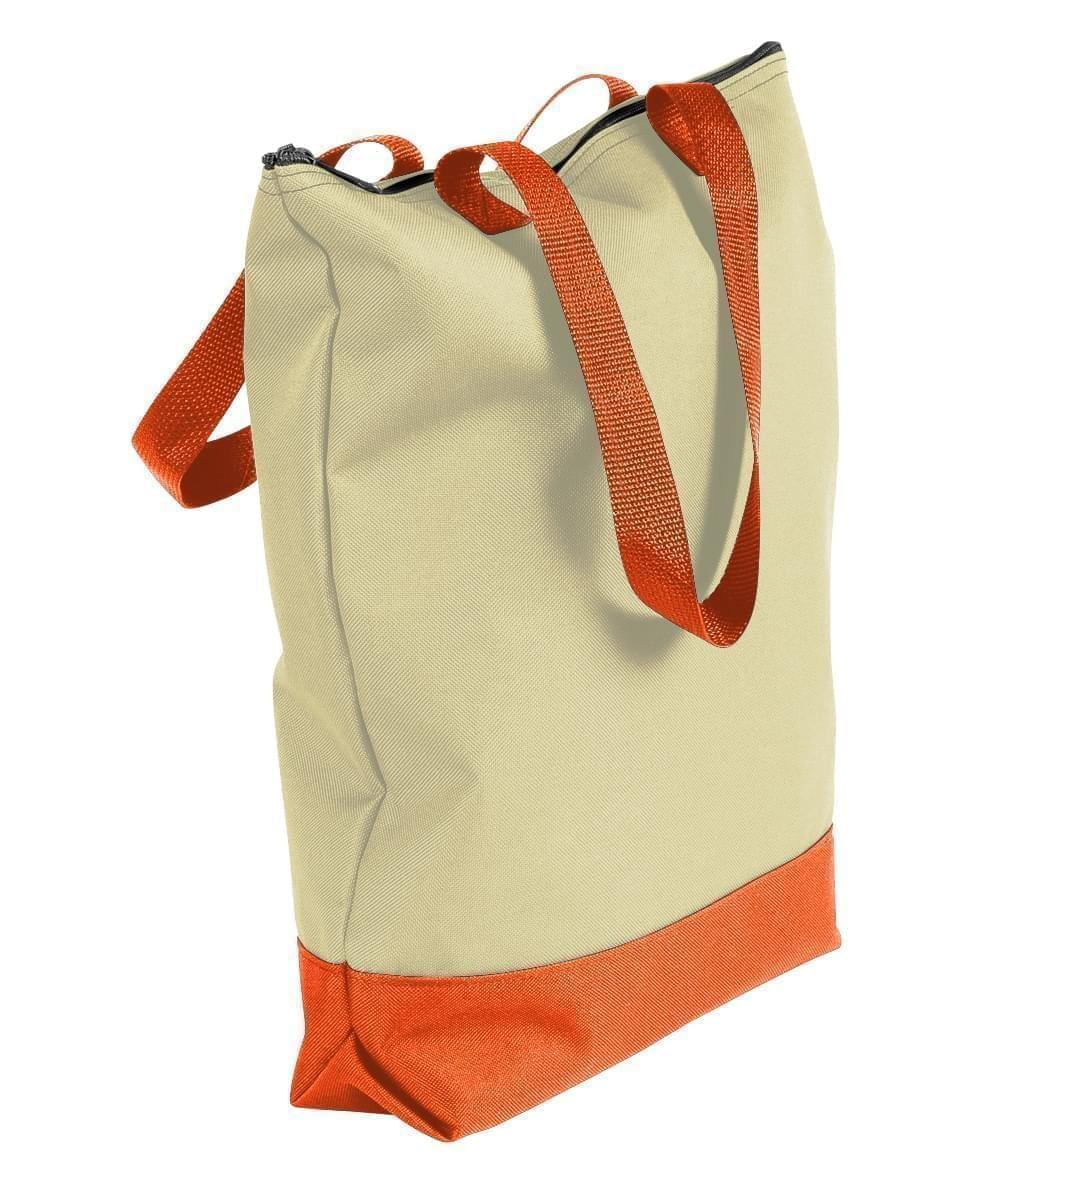 USA Made Canvas Portfolio Tote Bags, Natural-Orange, 1AAMX1UAK0